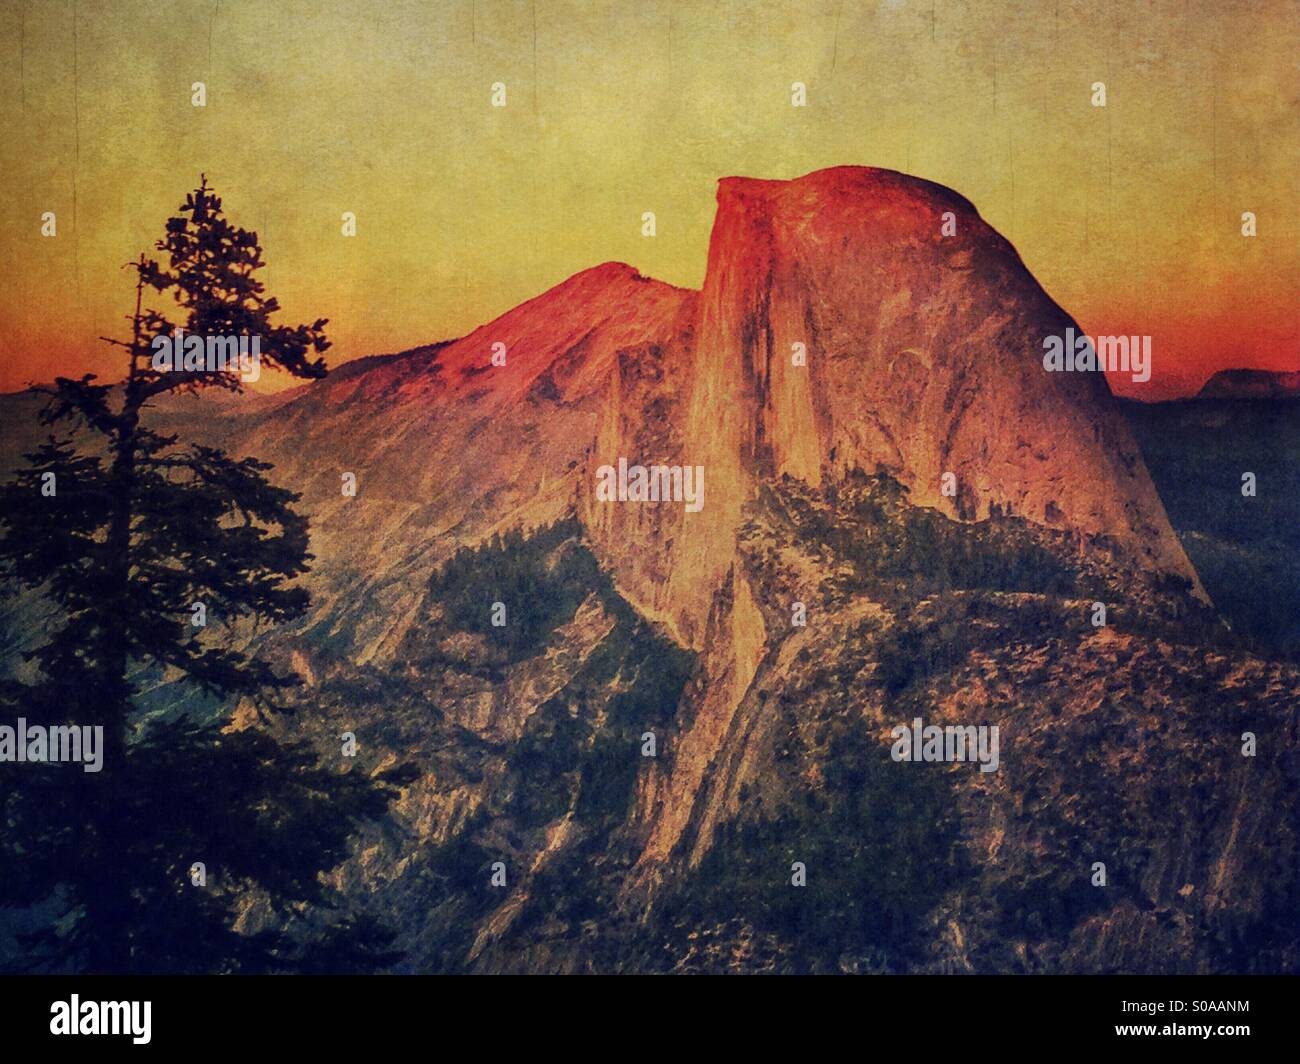 Halfdome at Yosemite National Park. - Stock Image